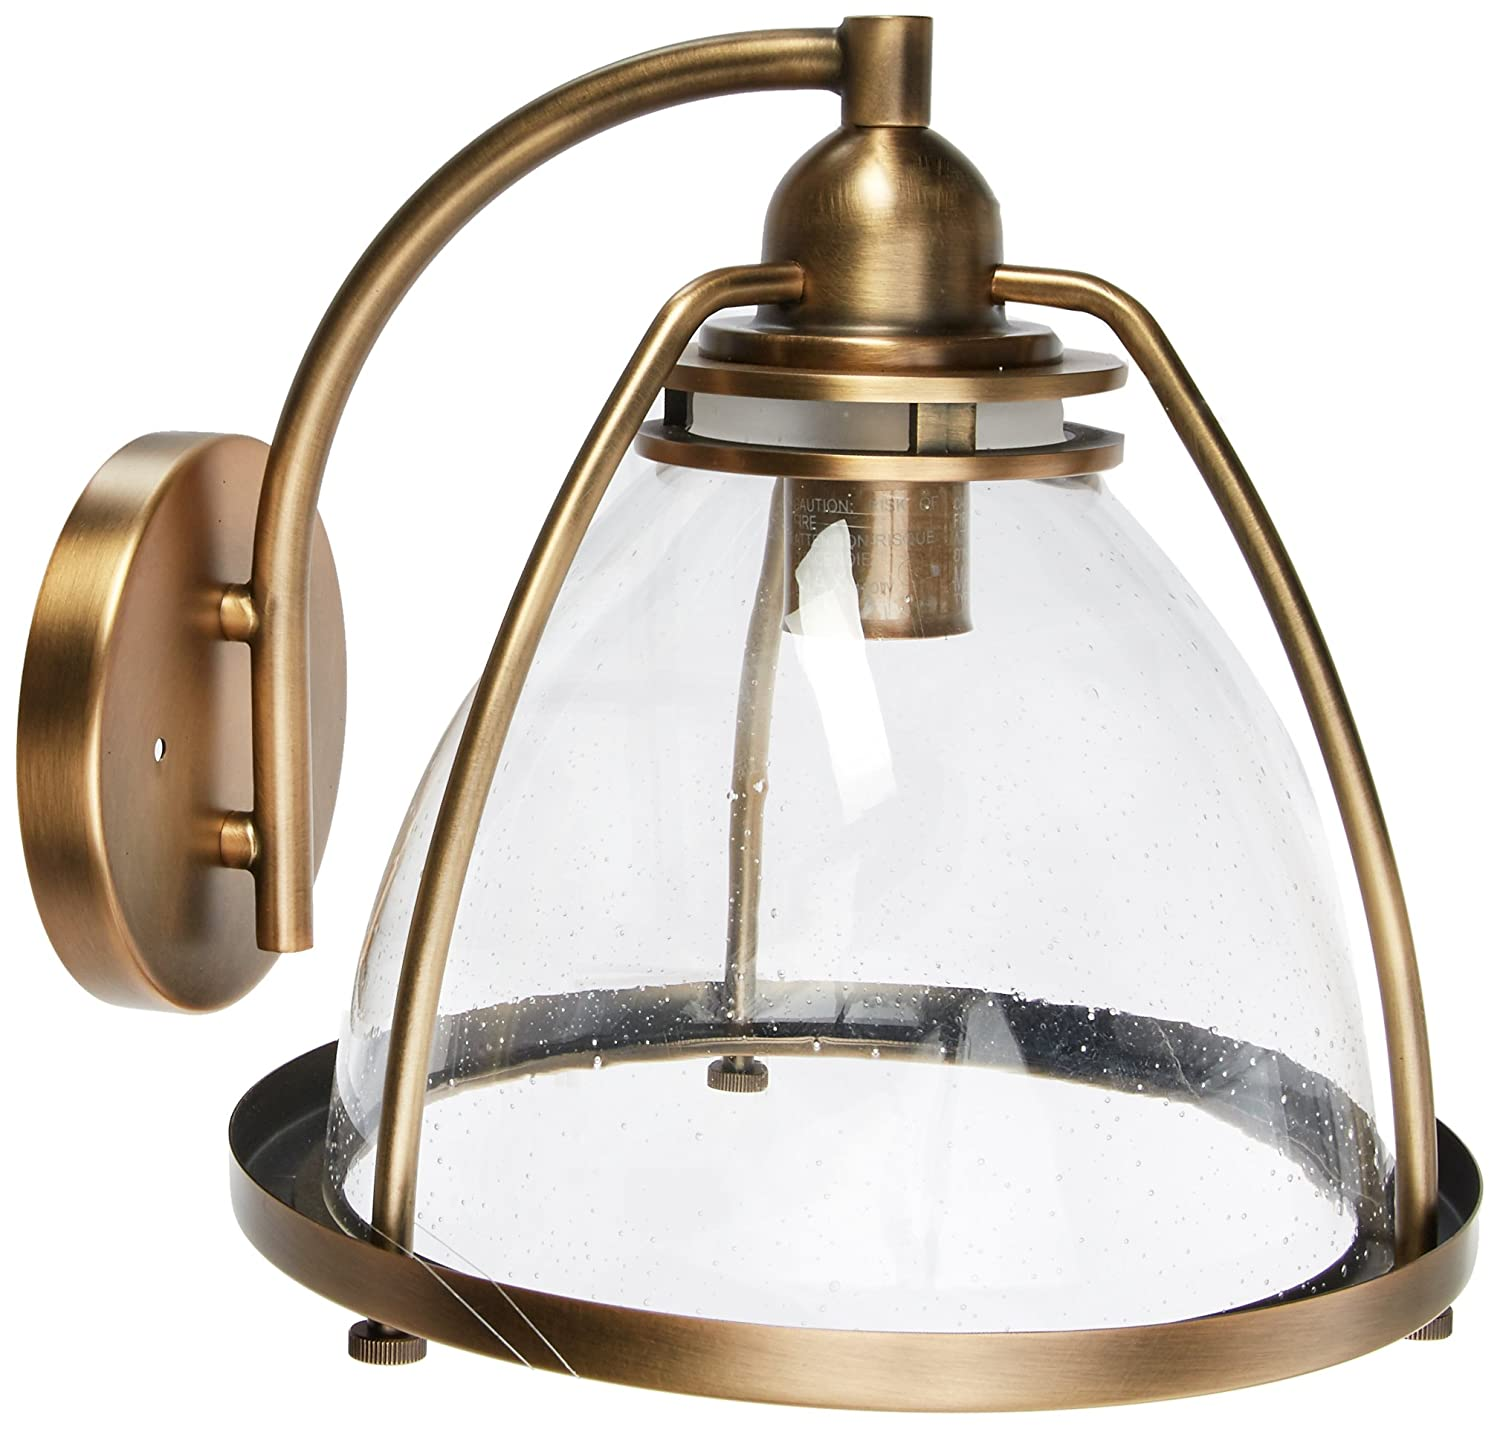 1 Light Silberne Crystal Wall Sconce Lighting with Shades Brass 75 Watts Kichler 43741NBR